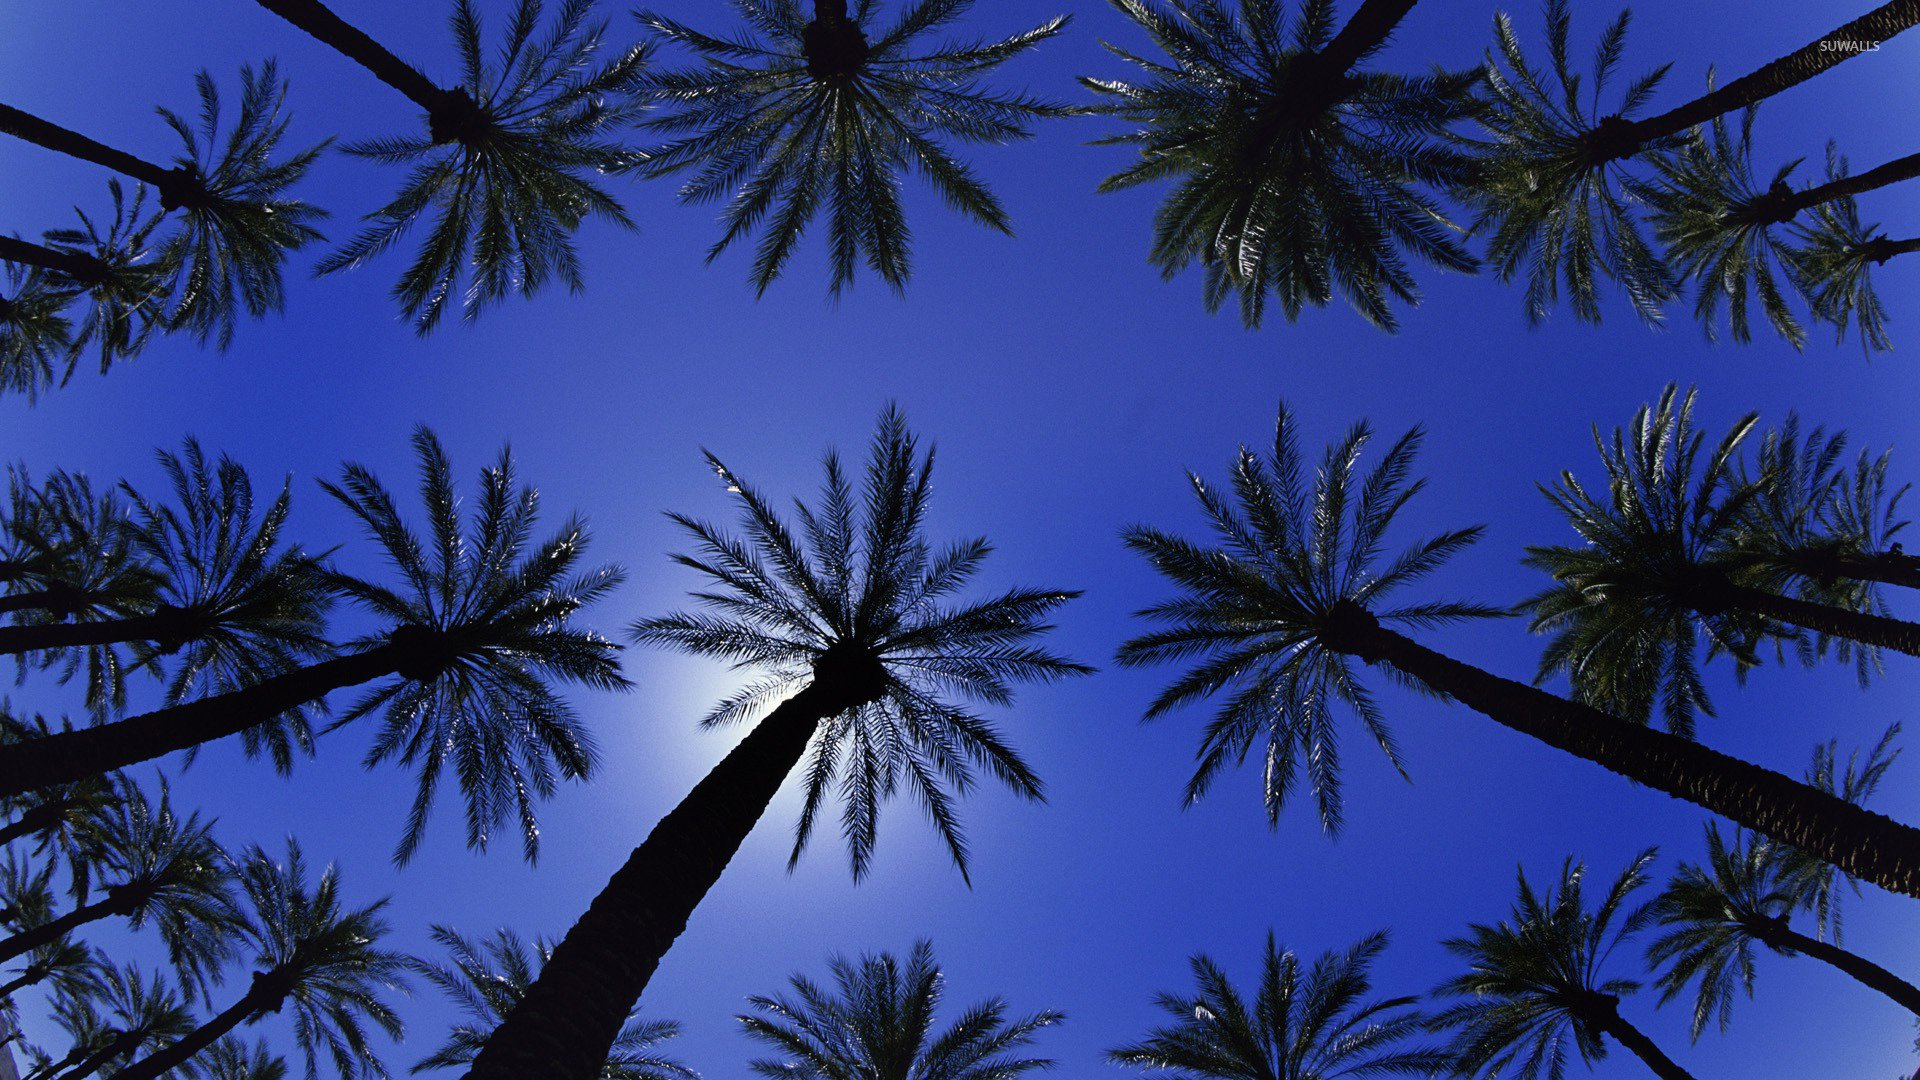 Palm trees wallpaper   Photography wallpapers   20463 1680x1050